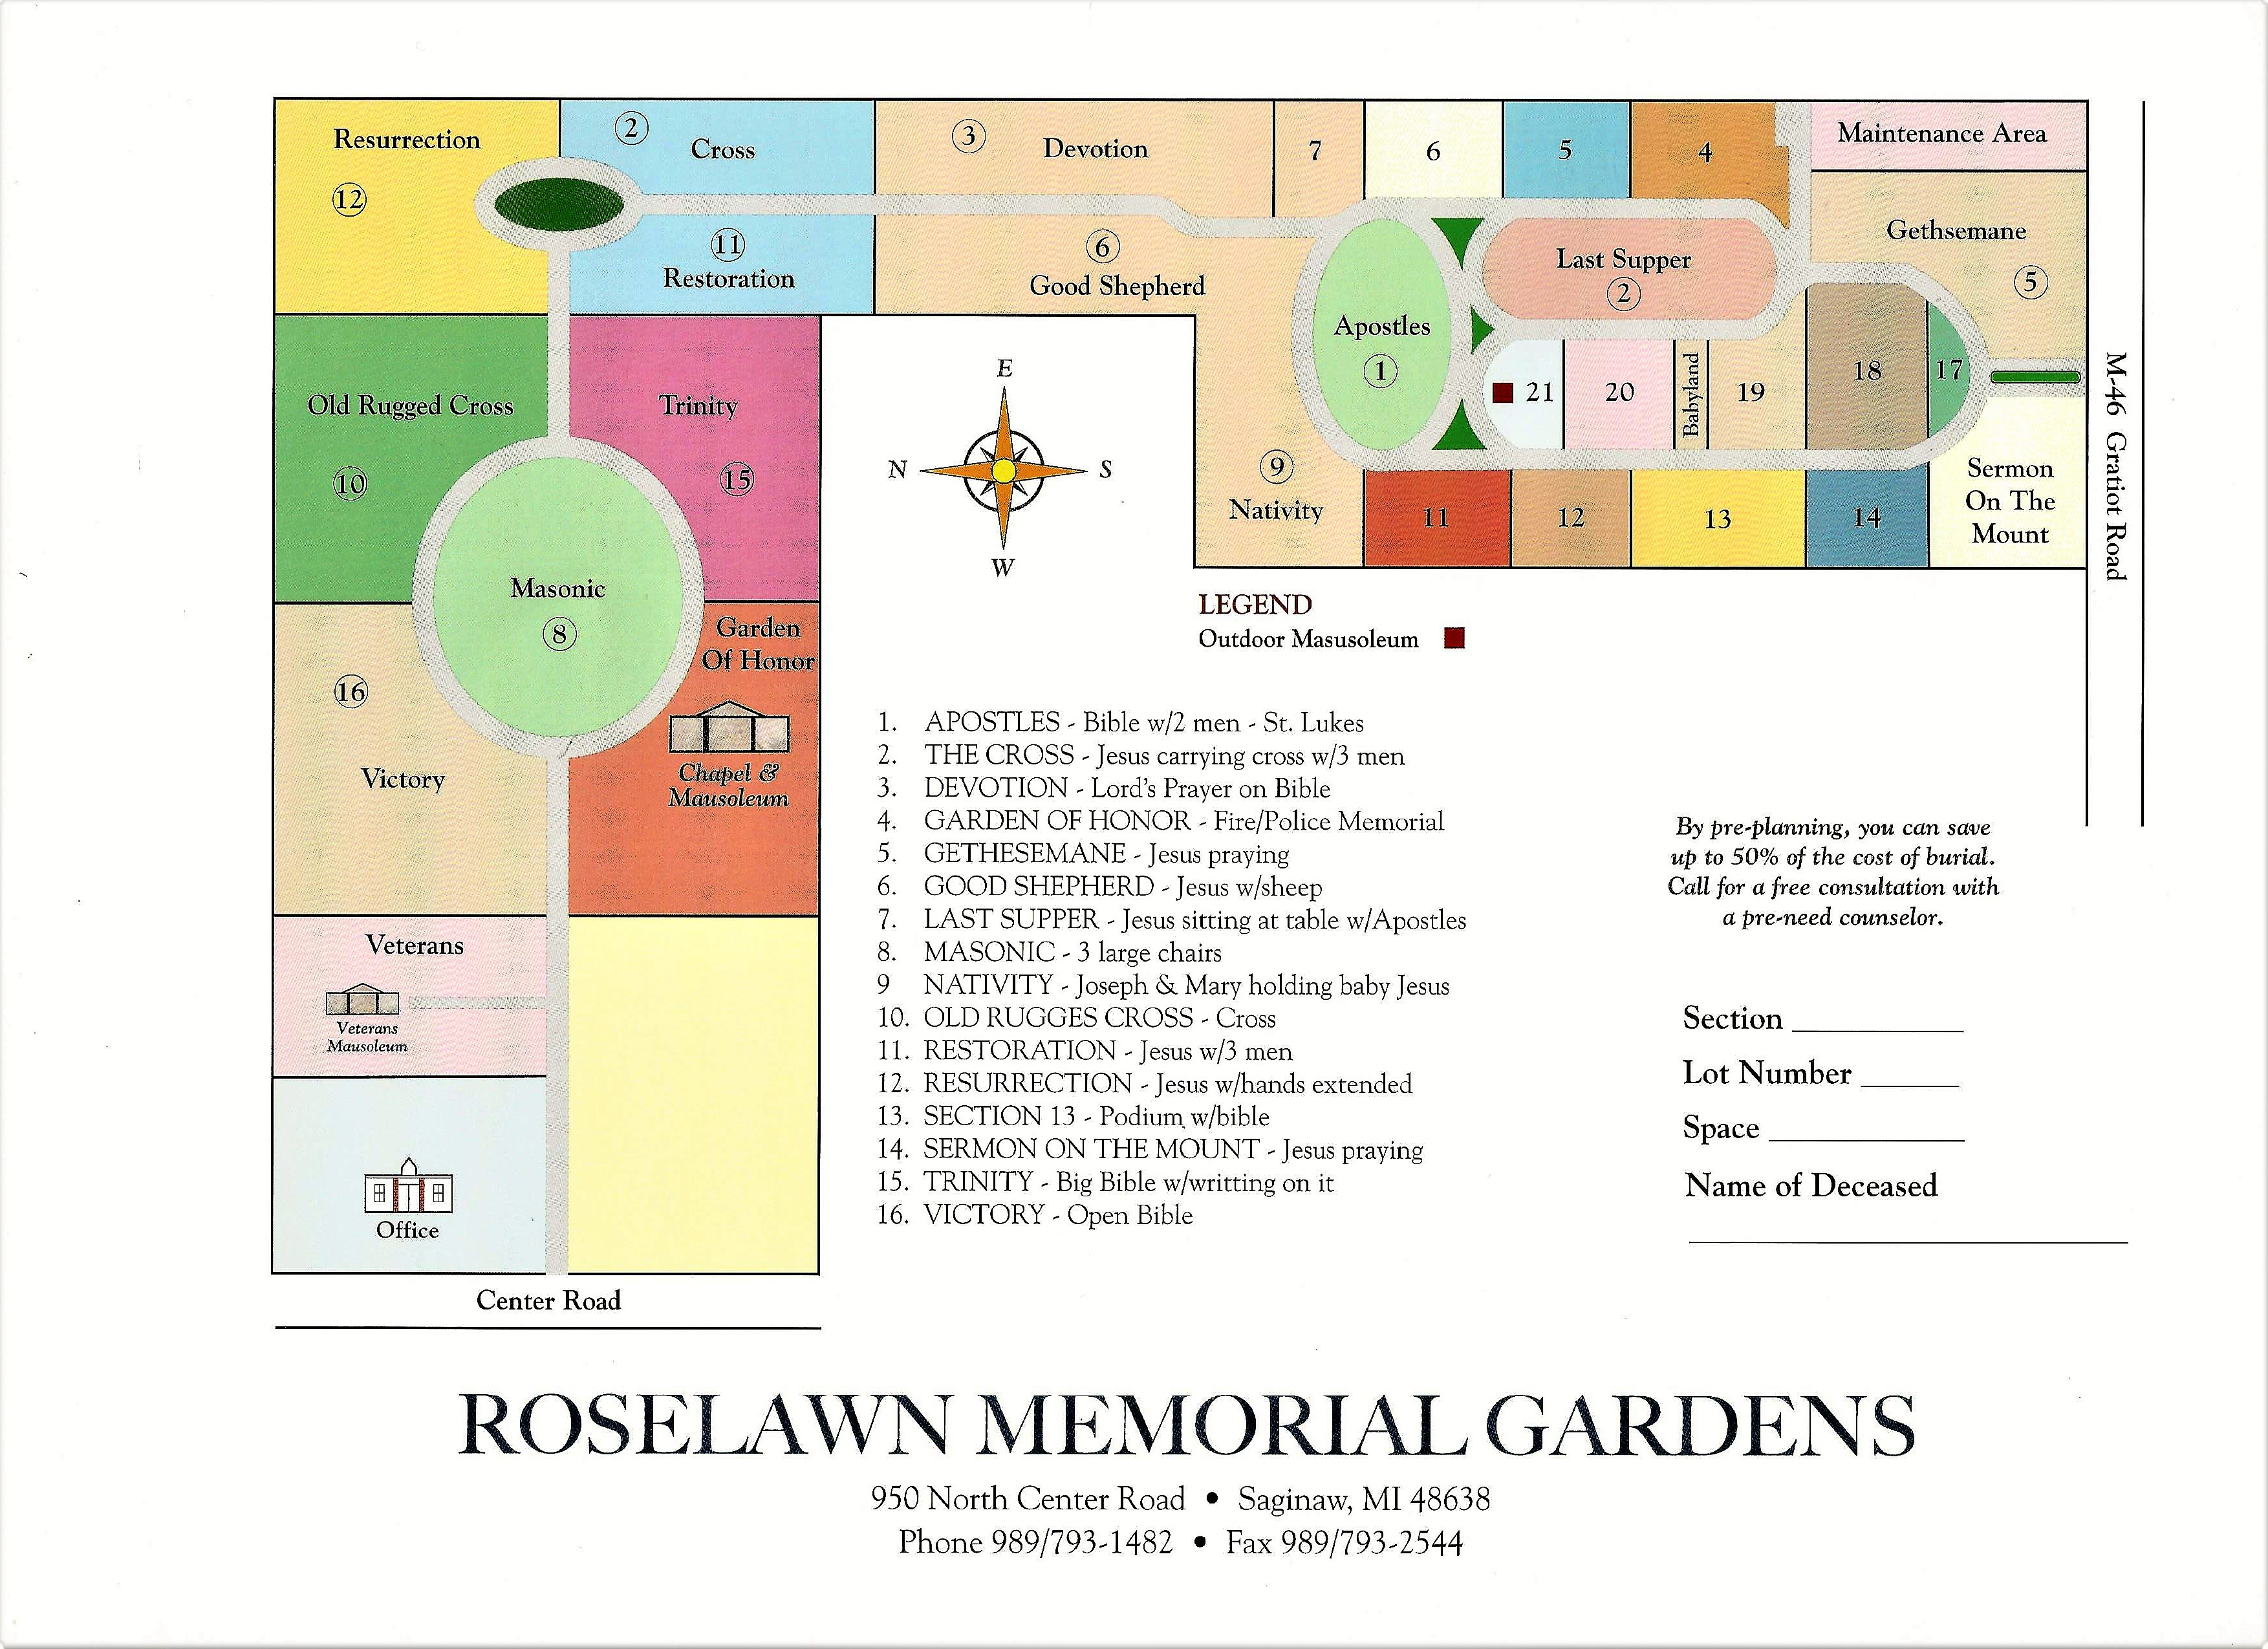 Roselawn Memorial Gardens in Saginaw, Michigan - Find A ... on wisconsin county map with roads, united states map with roads, clinton county map with roads, michigan county map with roads, denton county map with roads, gratiot county roads, wyoming map with roads, alabama county map with roads, pennsylvania county map with roads, jackson map with roads, hamilton county map with roads, georgia county map with roads, ohio county map with roads, dallas county map with roads,